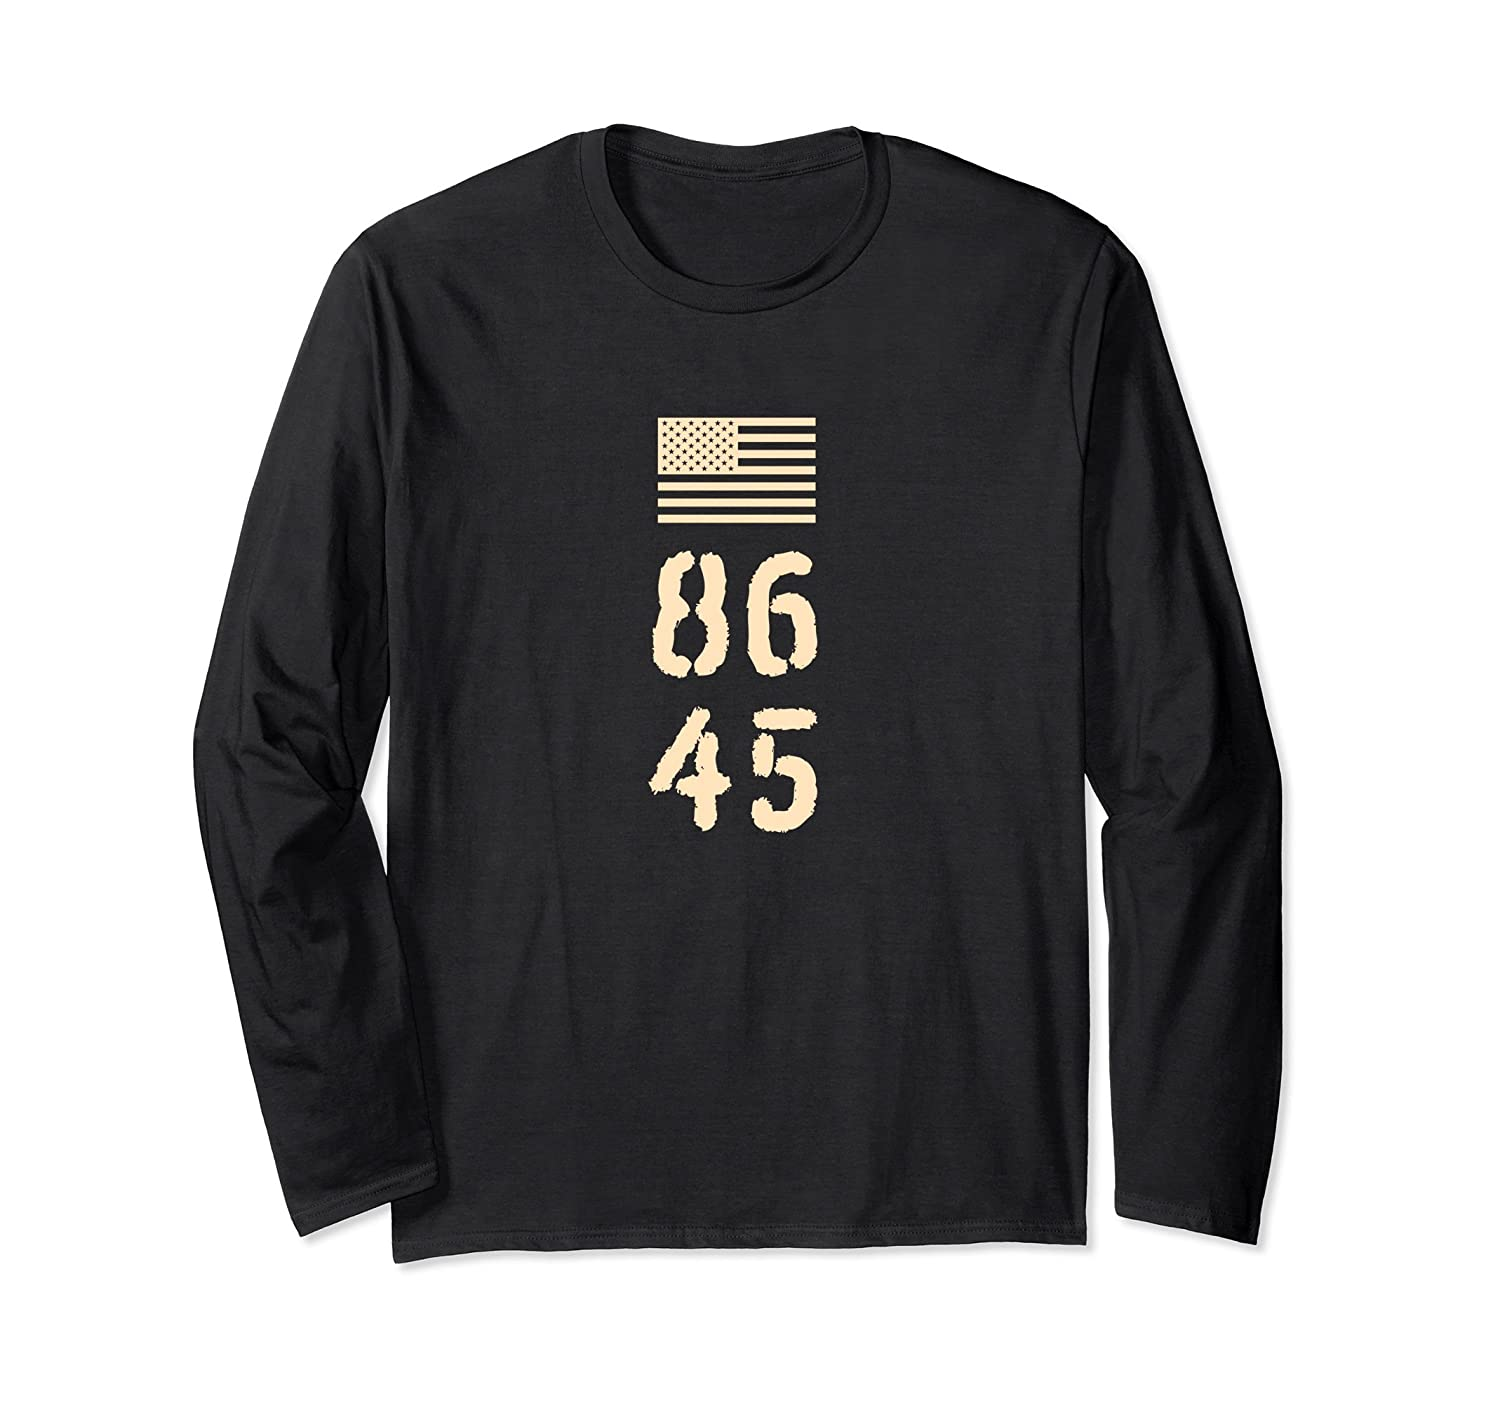 8645 T Shirt Military Style Protest Impeach Gift-mt